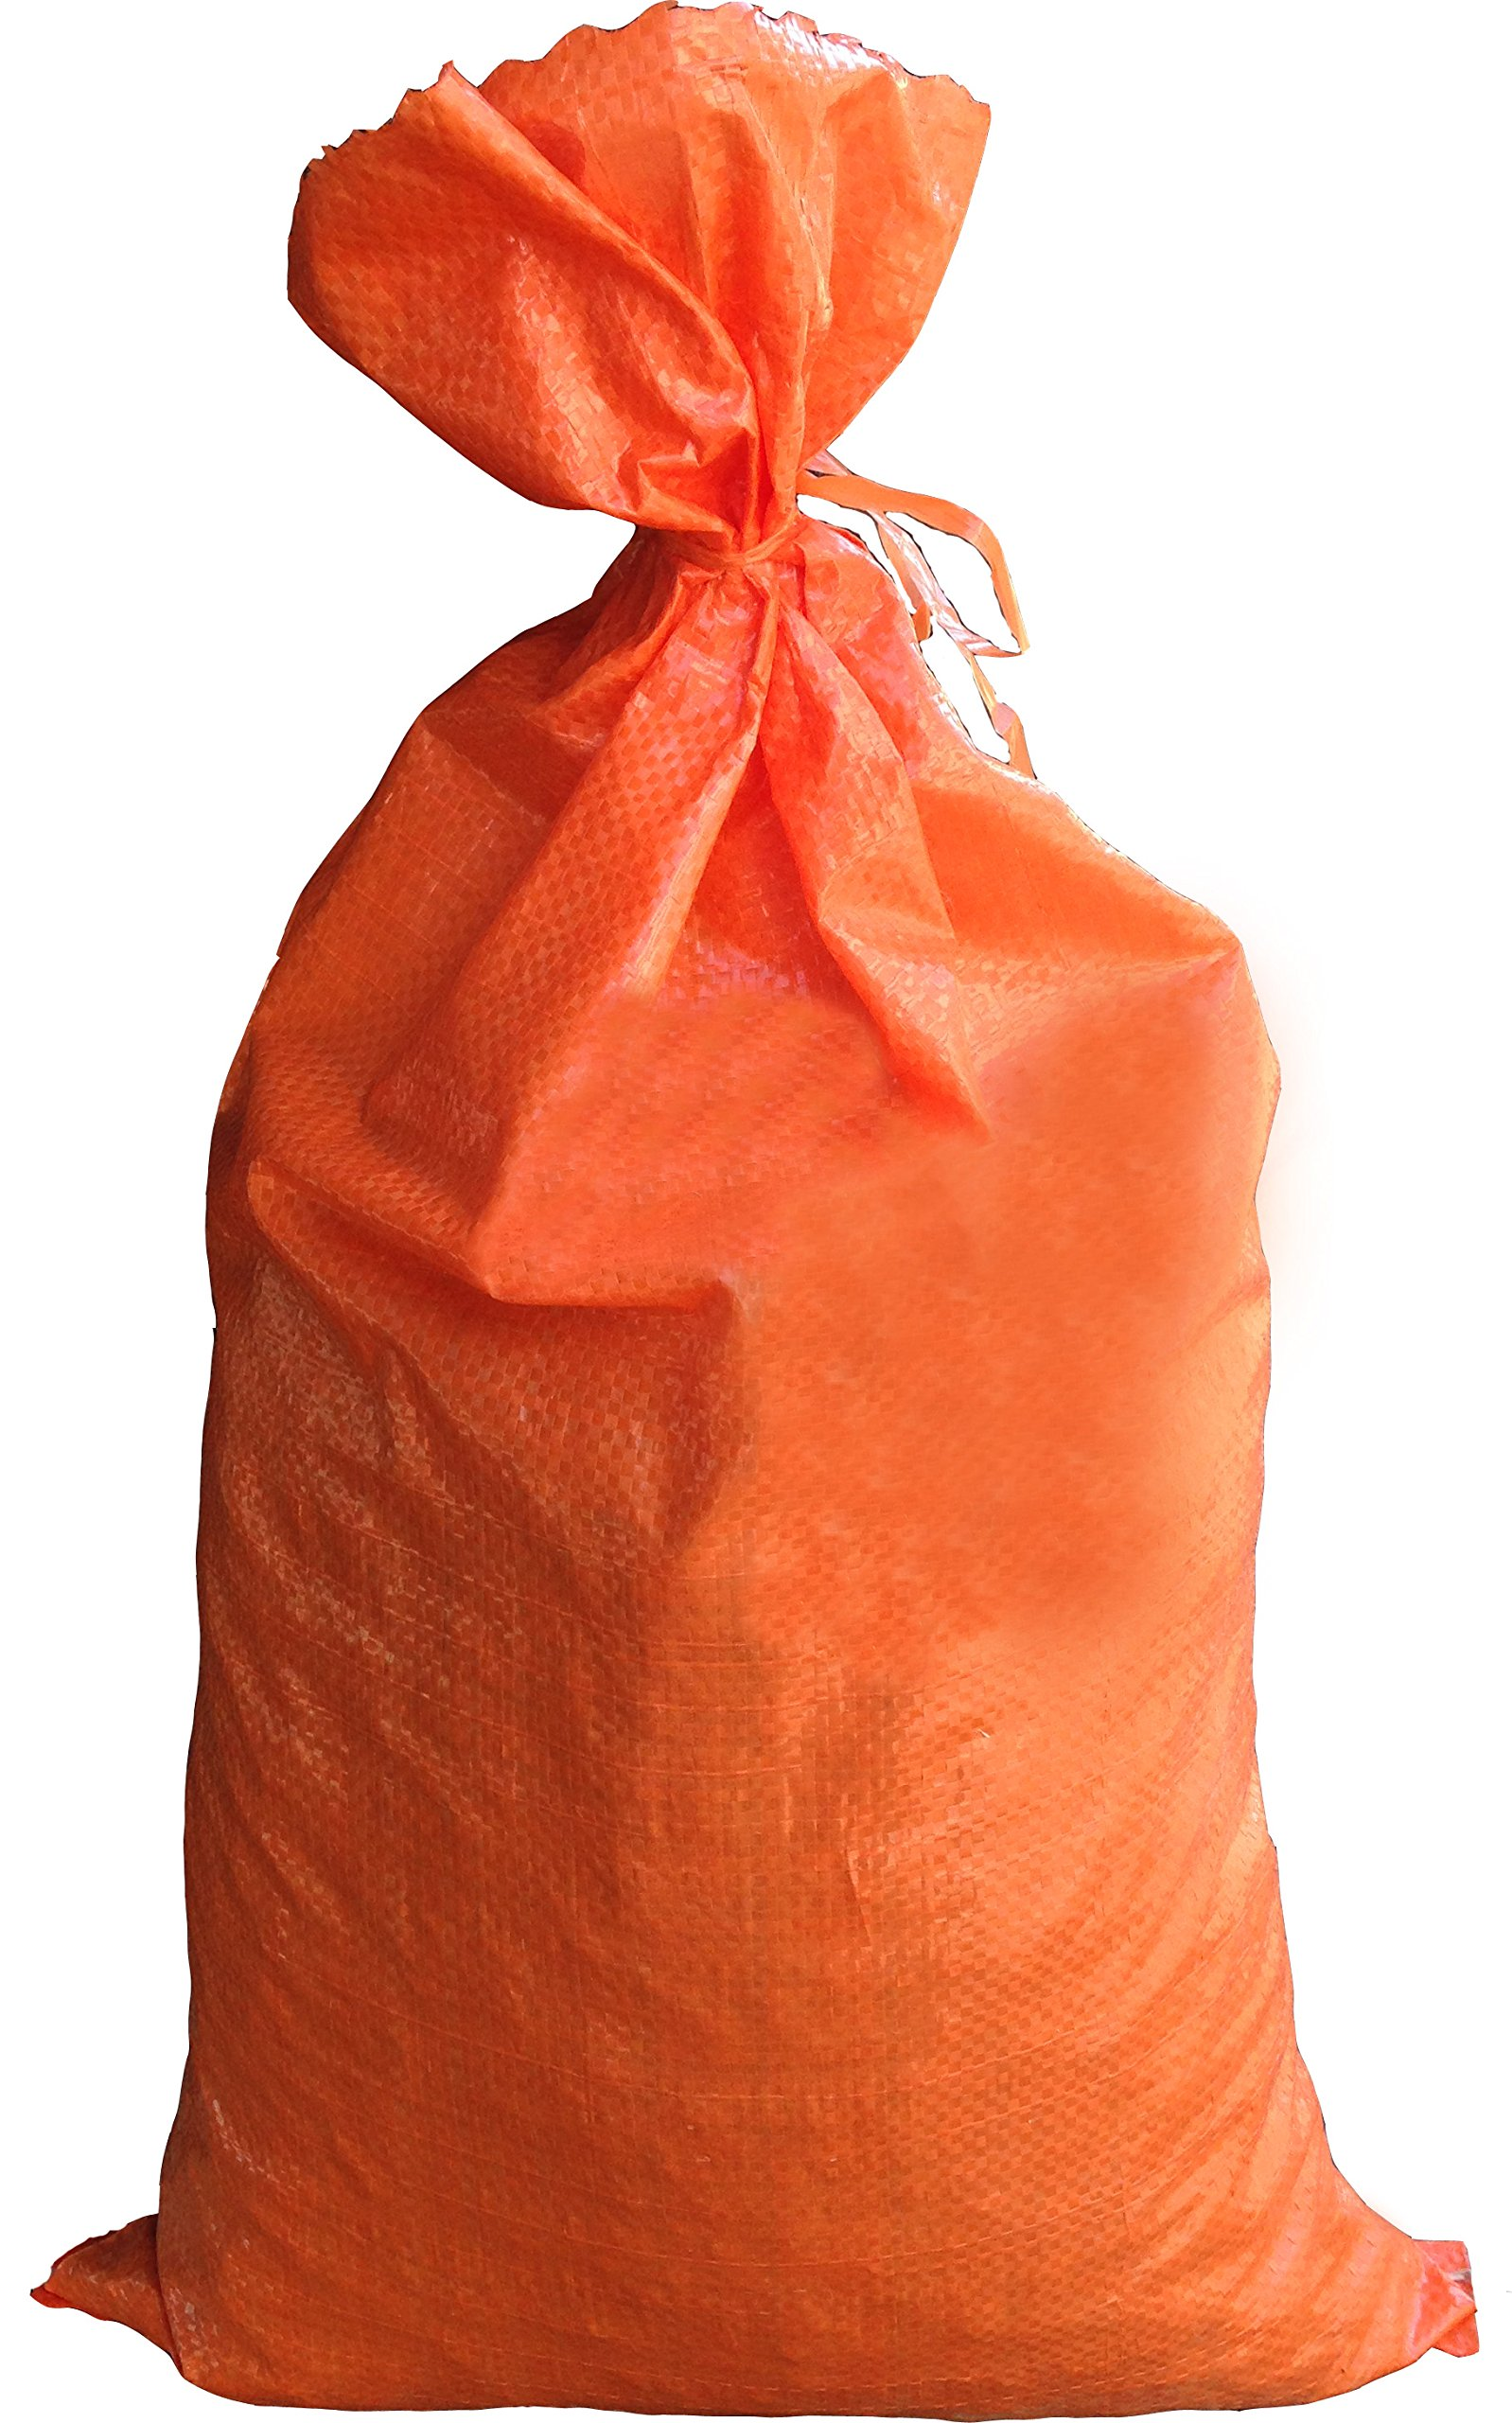 Sandbags for Flooding - Size: 14'' x 26'' - Color: Orange - Sand Bag - Flood Water Barrier - Water Curb - Tent Sandbags - Store Bags by Sandbaggy (50 Sandbags) by Sandbaggy